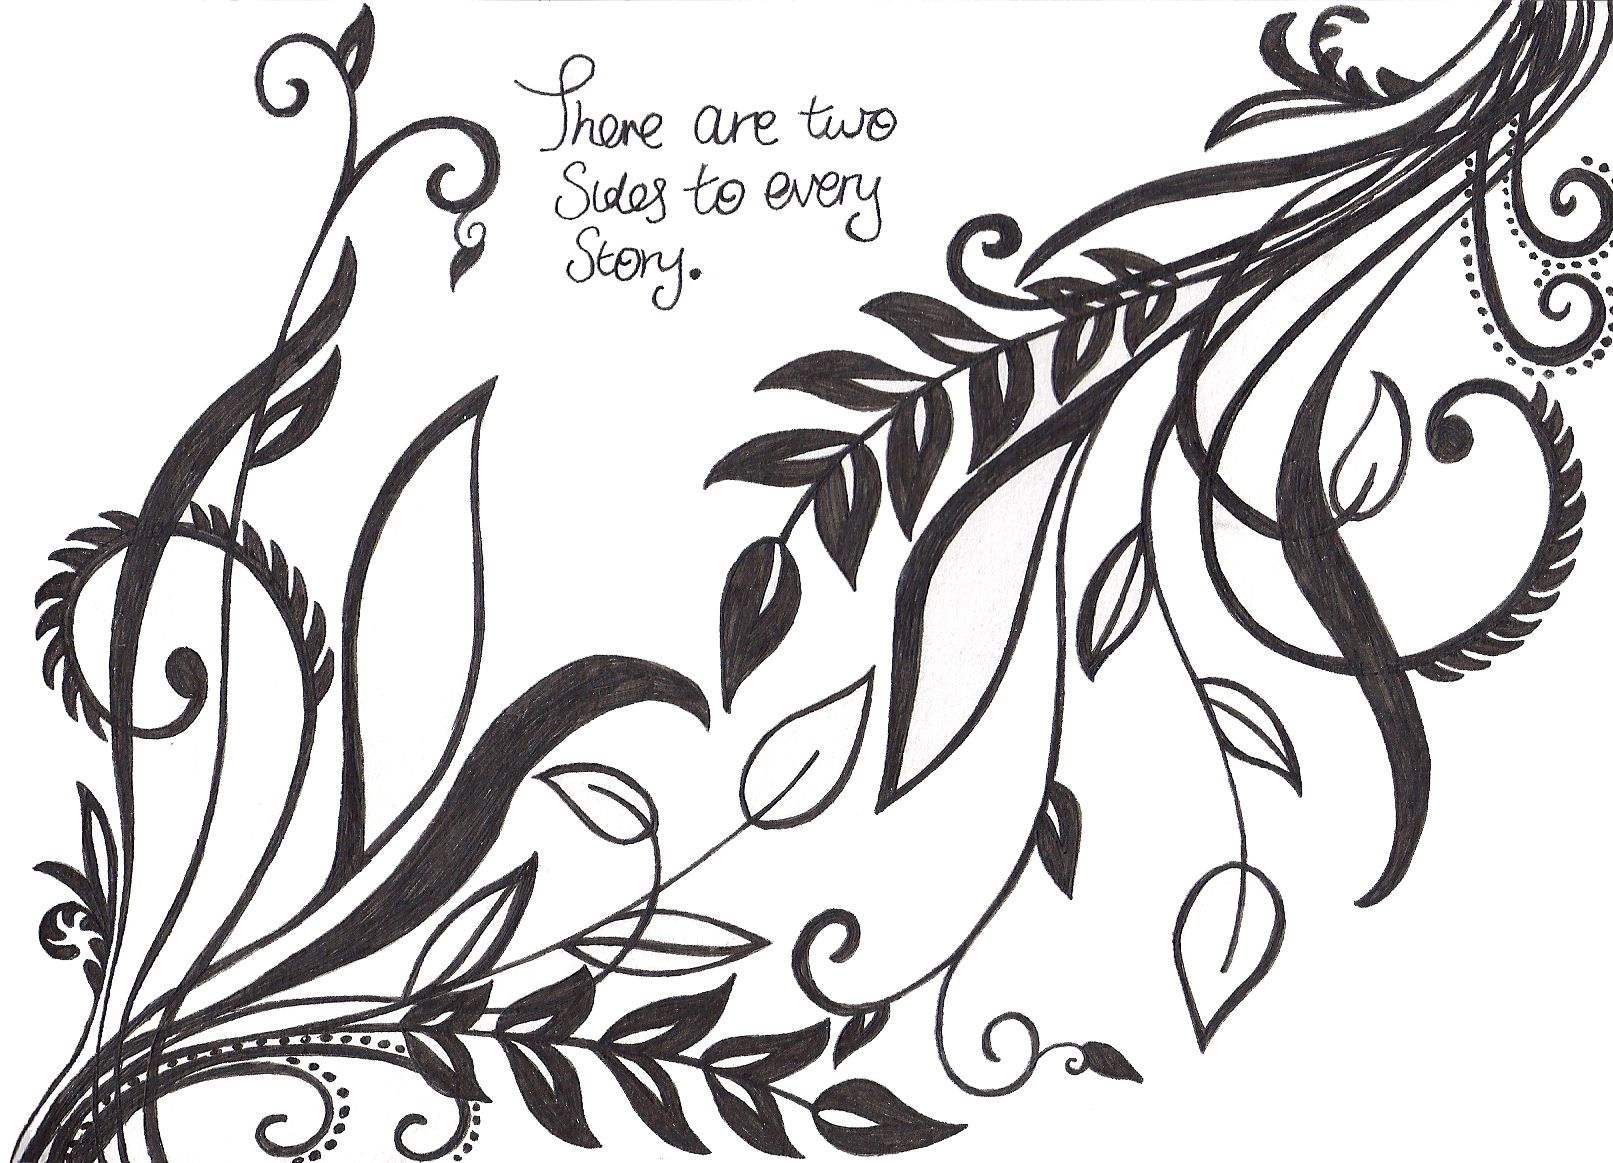 art quote drawing design leaves pattern swirls drawings